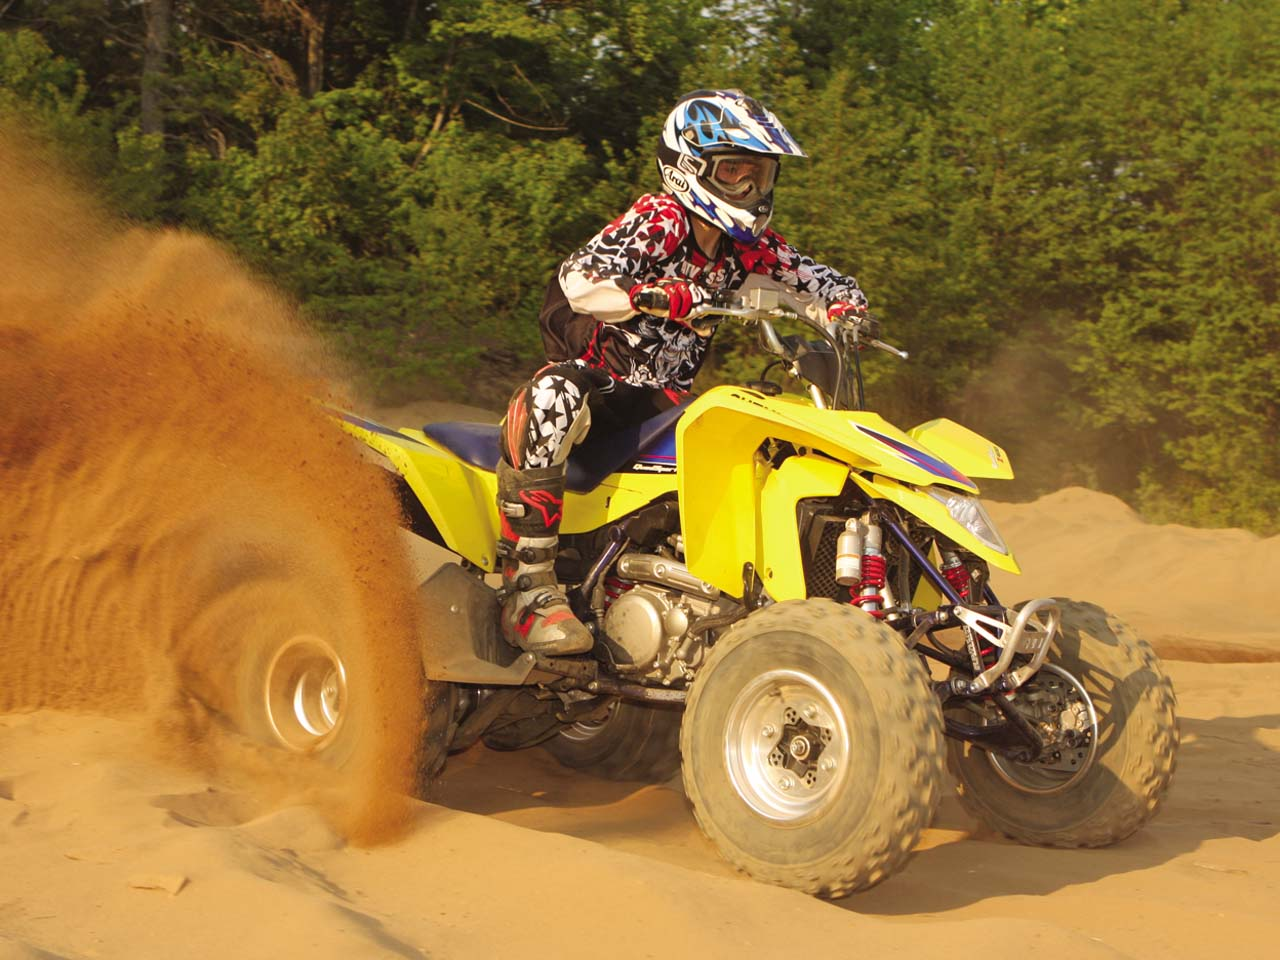 best sport atv the 2011 suzuki ltz 400 atv illustrated rh atvillustrated com Suzuki ATV Logo Tracks On Suzuki Z400